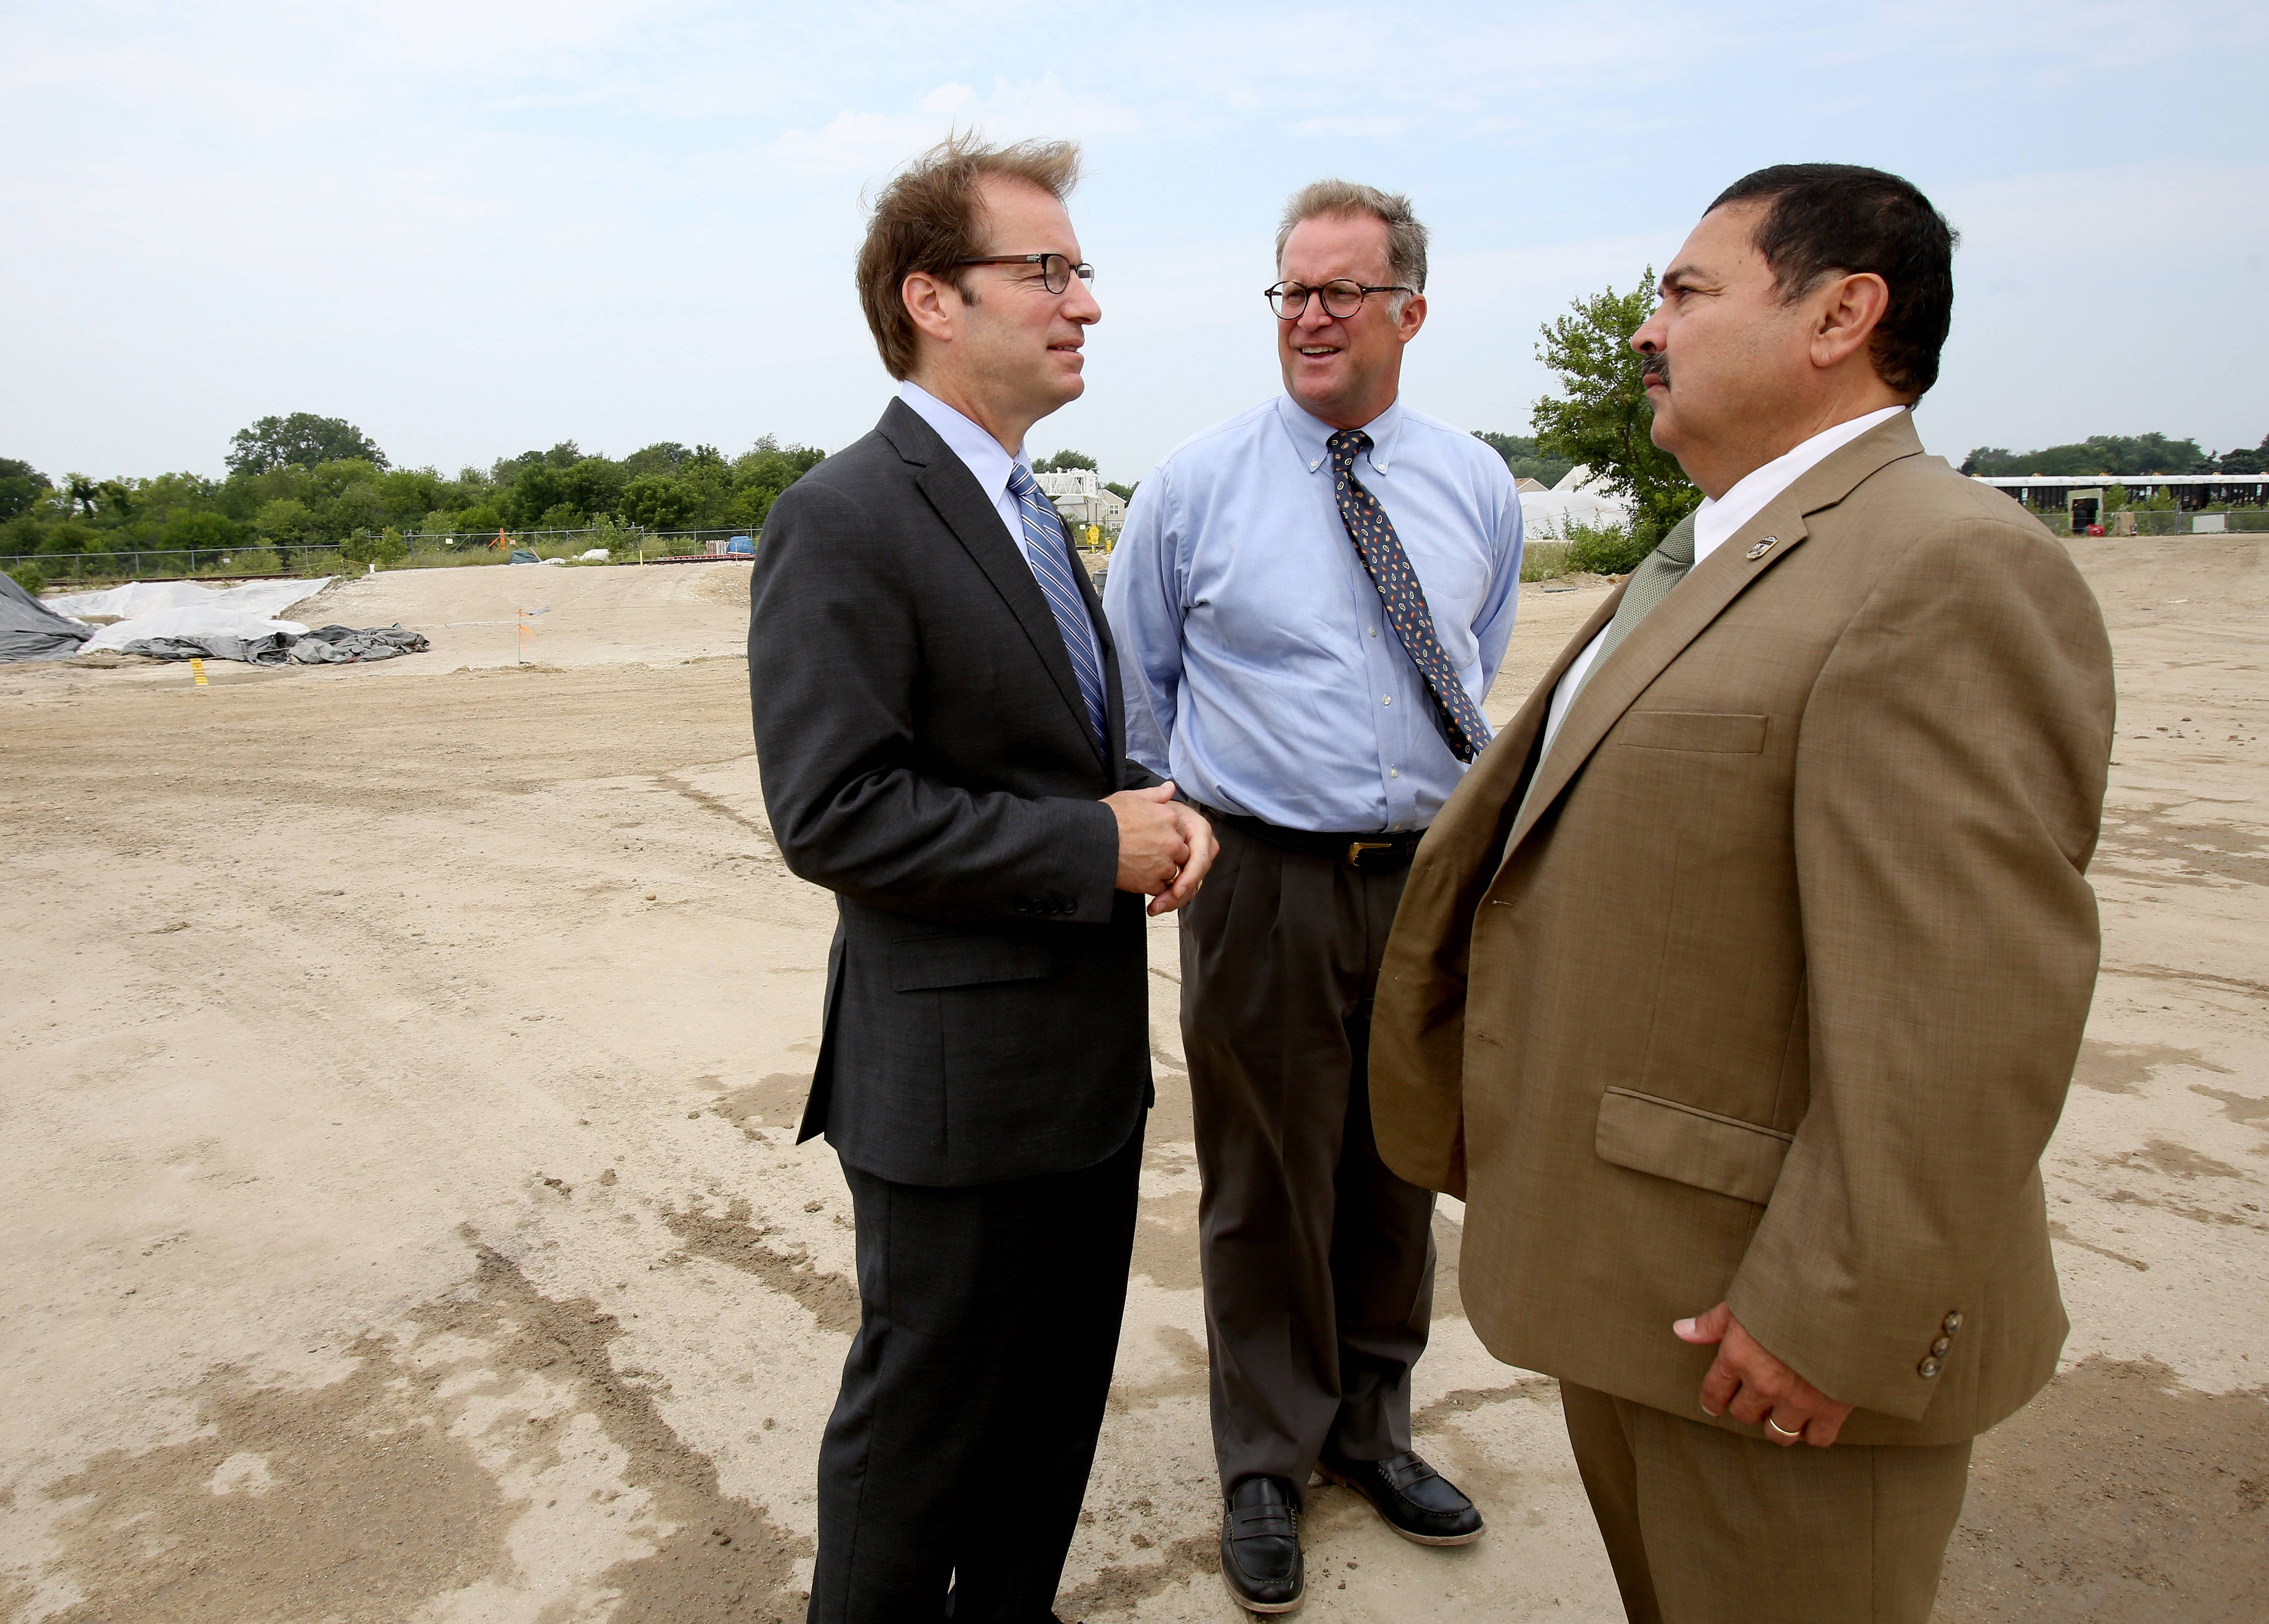 Congressman Peter Roskam joins other community leaders, including DuPage County Board Chairman Dan Cronin, center, and West Chicago Mayor Ruben Pineda to call for more federal money to finish the environmental cleanup of the former Kerr-McGee factory site in West Chicago.